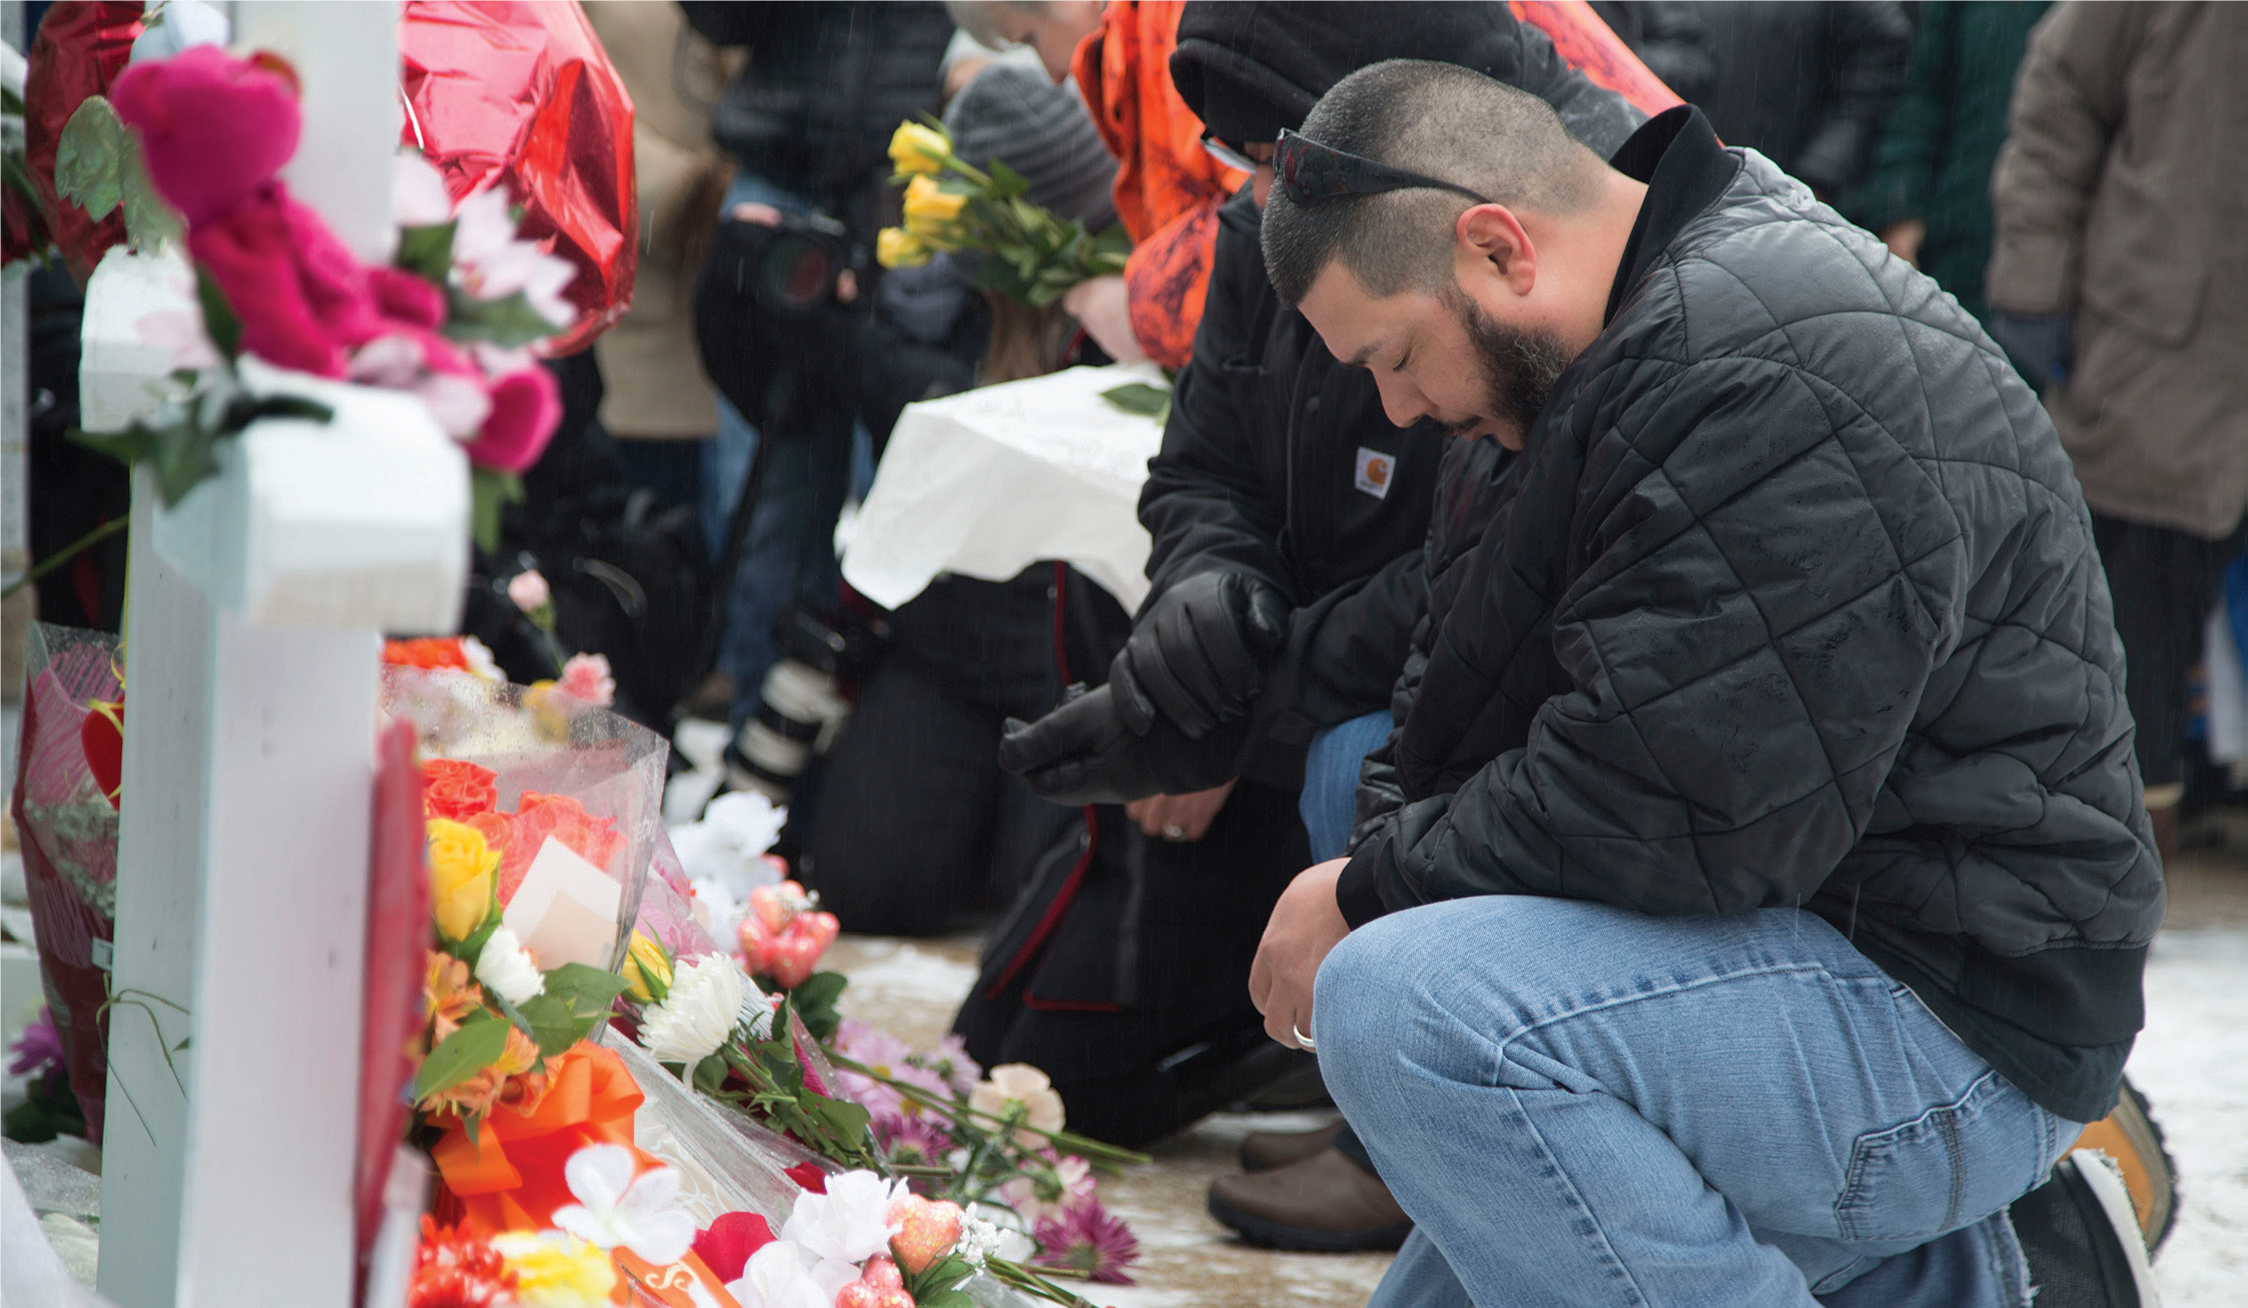 Help is on the Way – The IAM's Response to Tragedy in Aurora